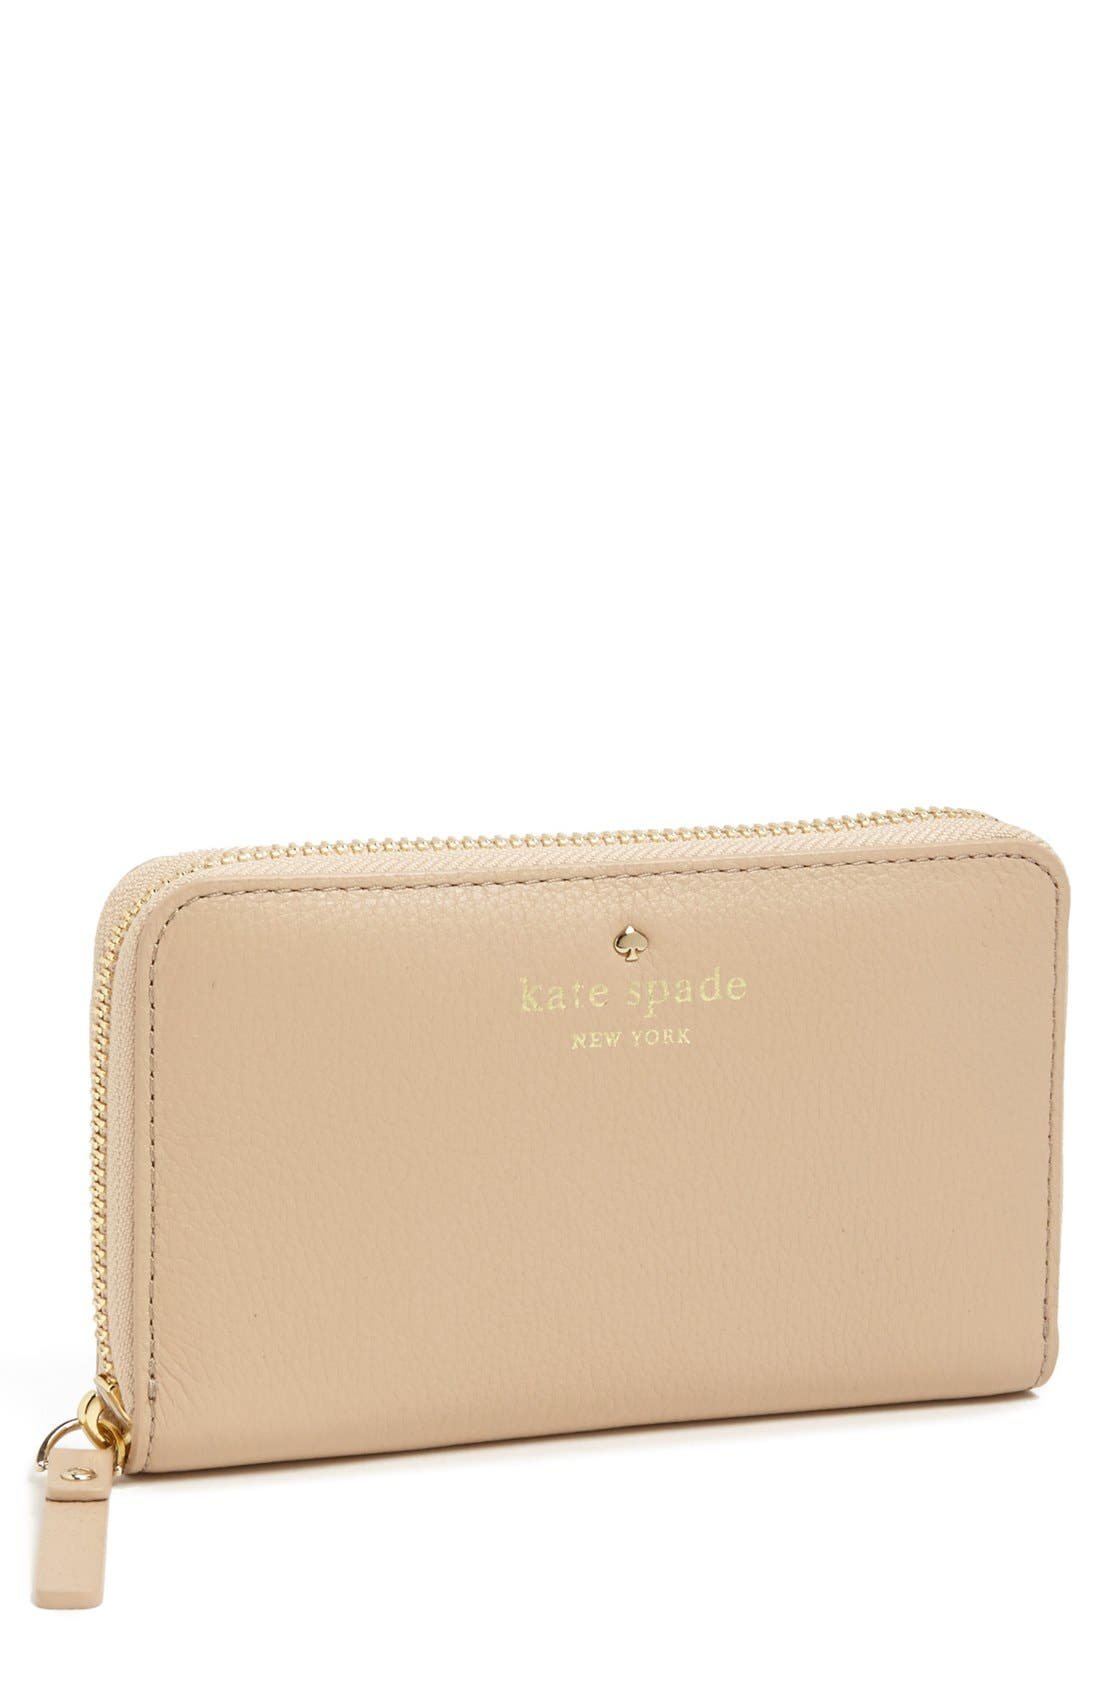 Main Image - kate spade new york 'lacey - small' zip wallet